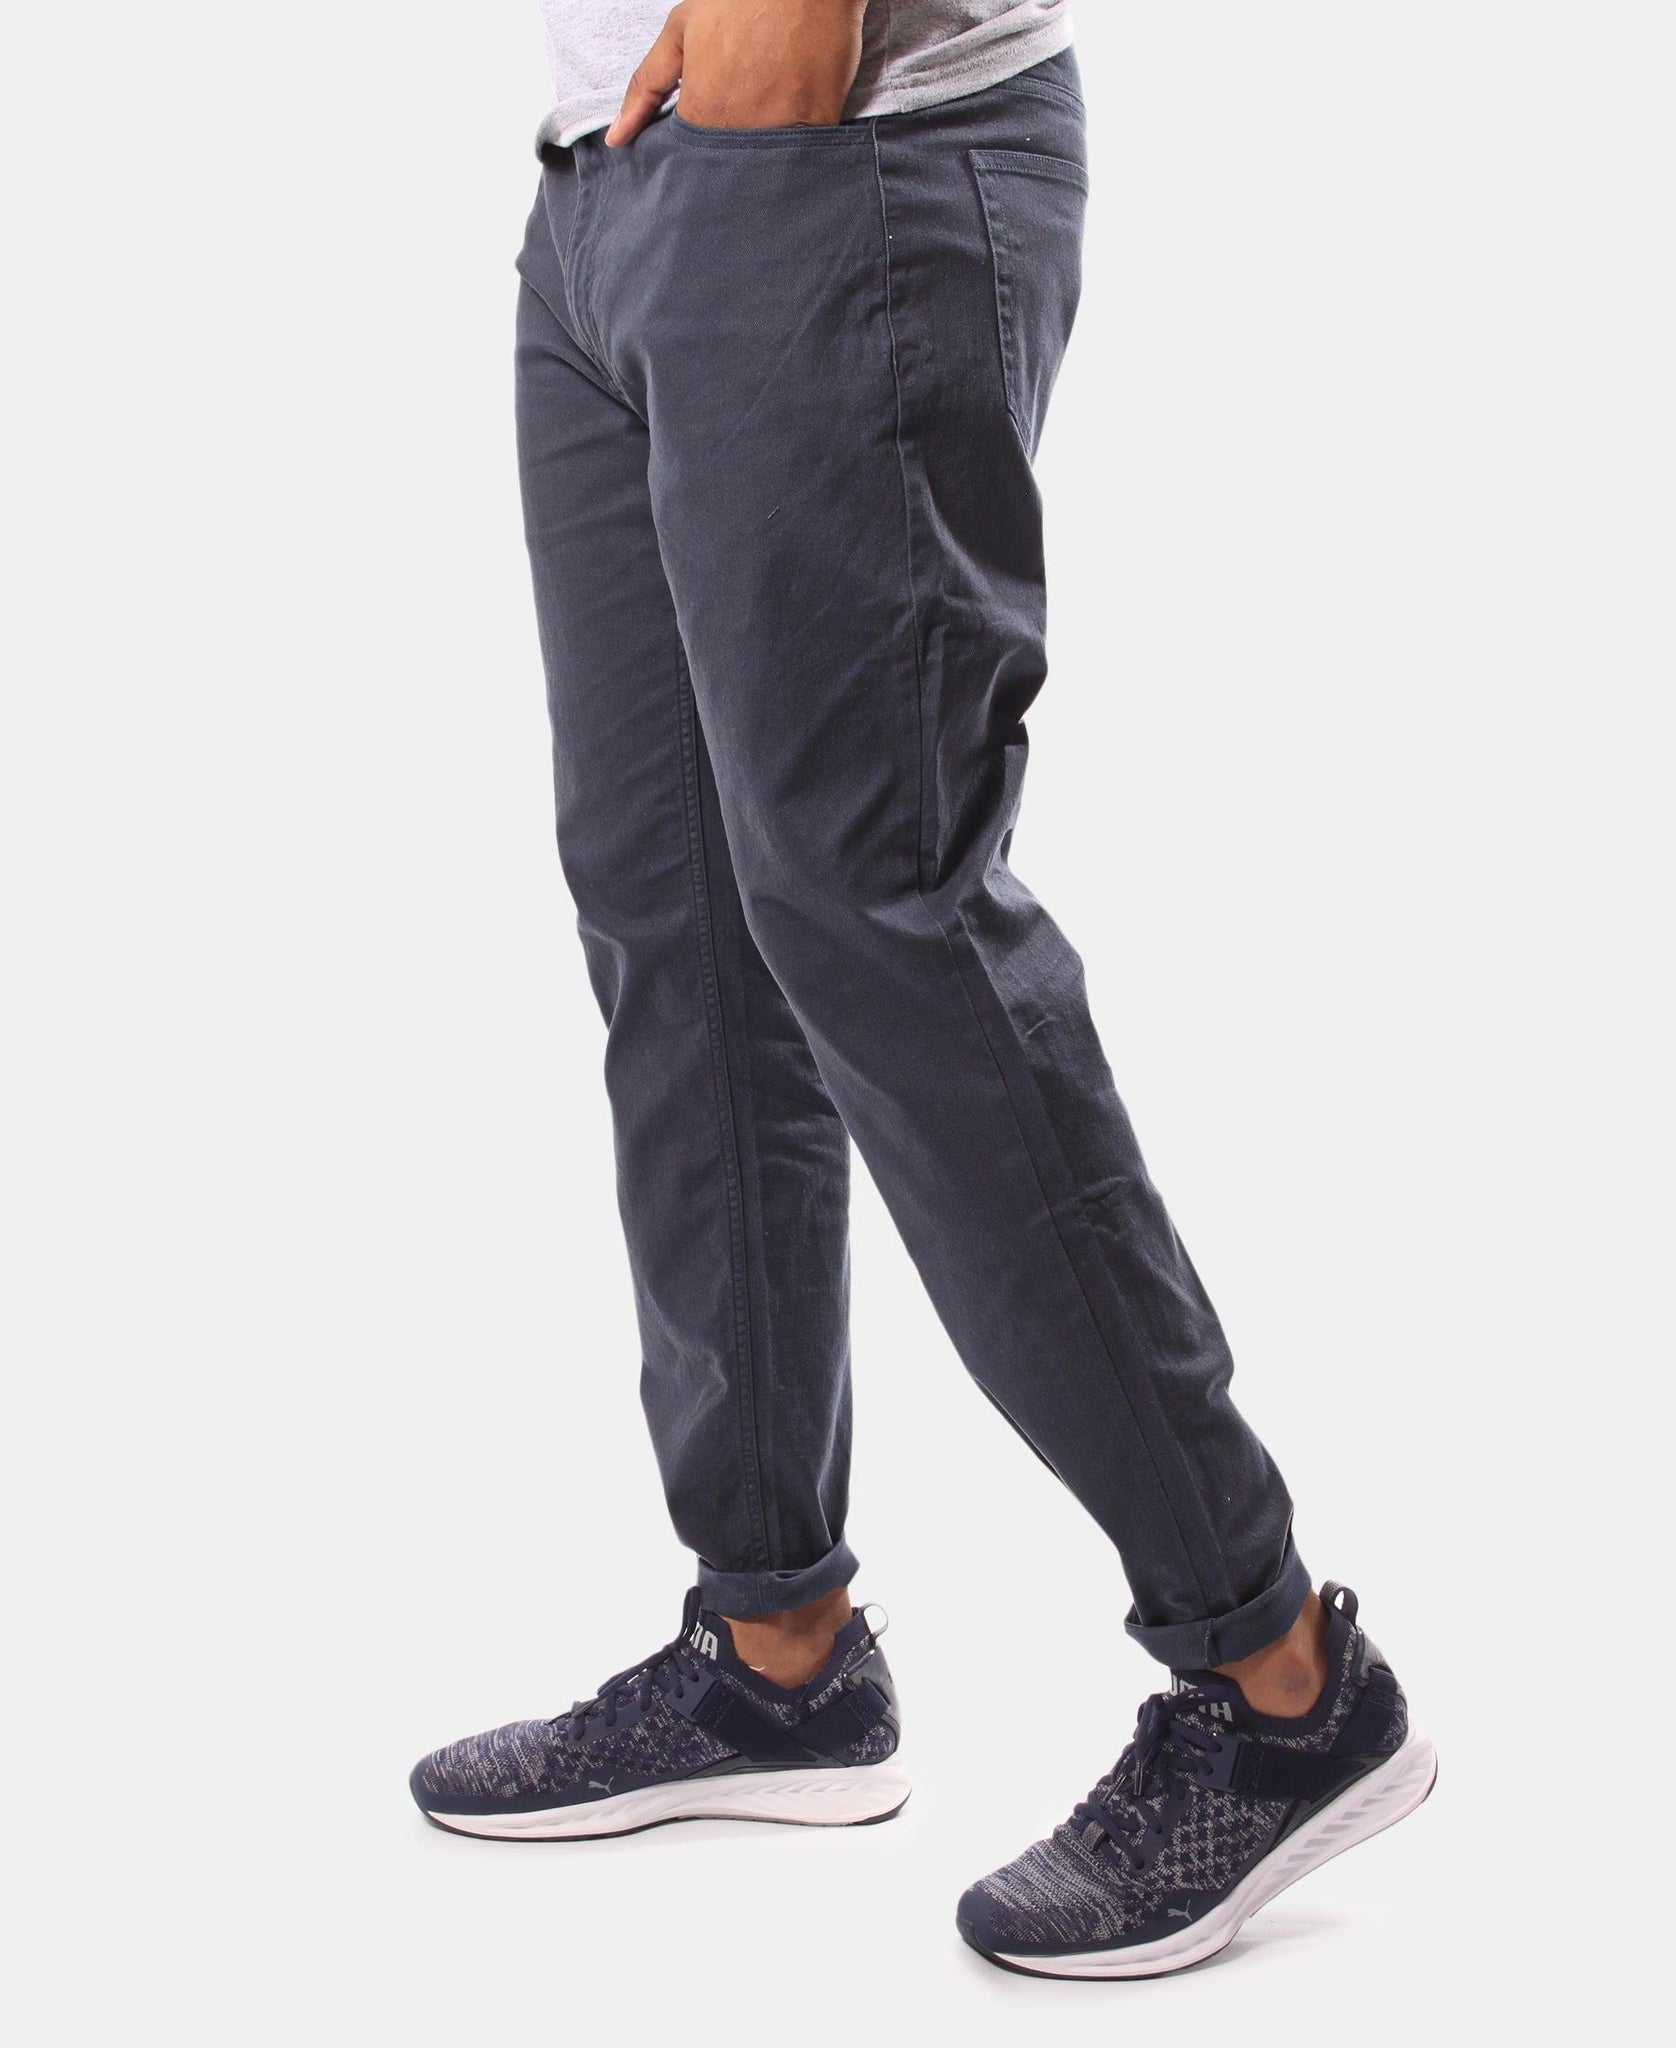 Men's Casual Pants - Navy